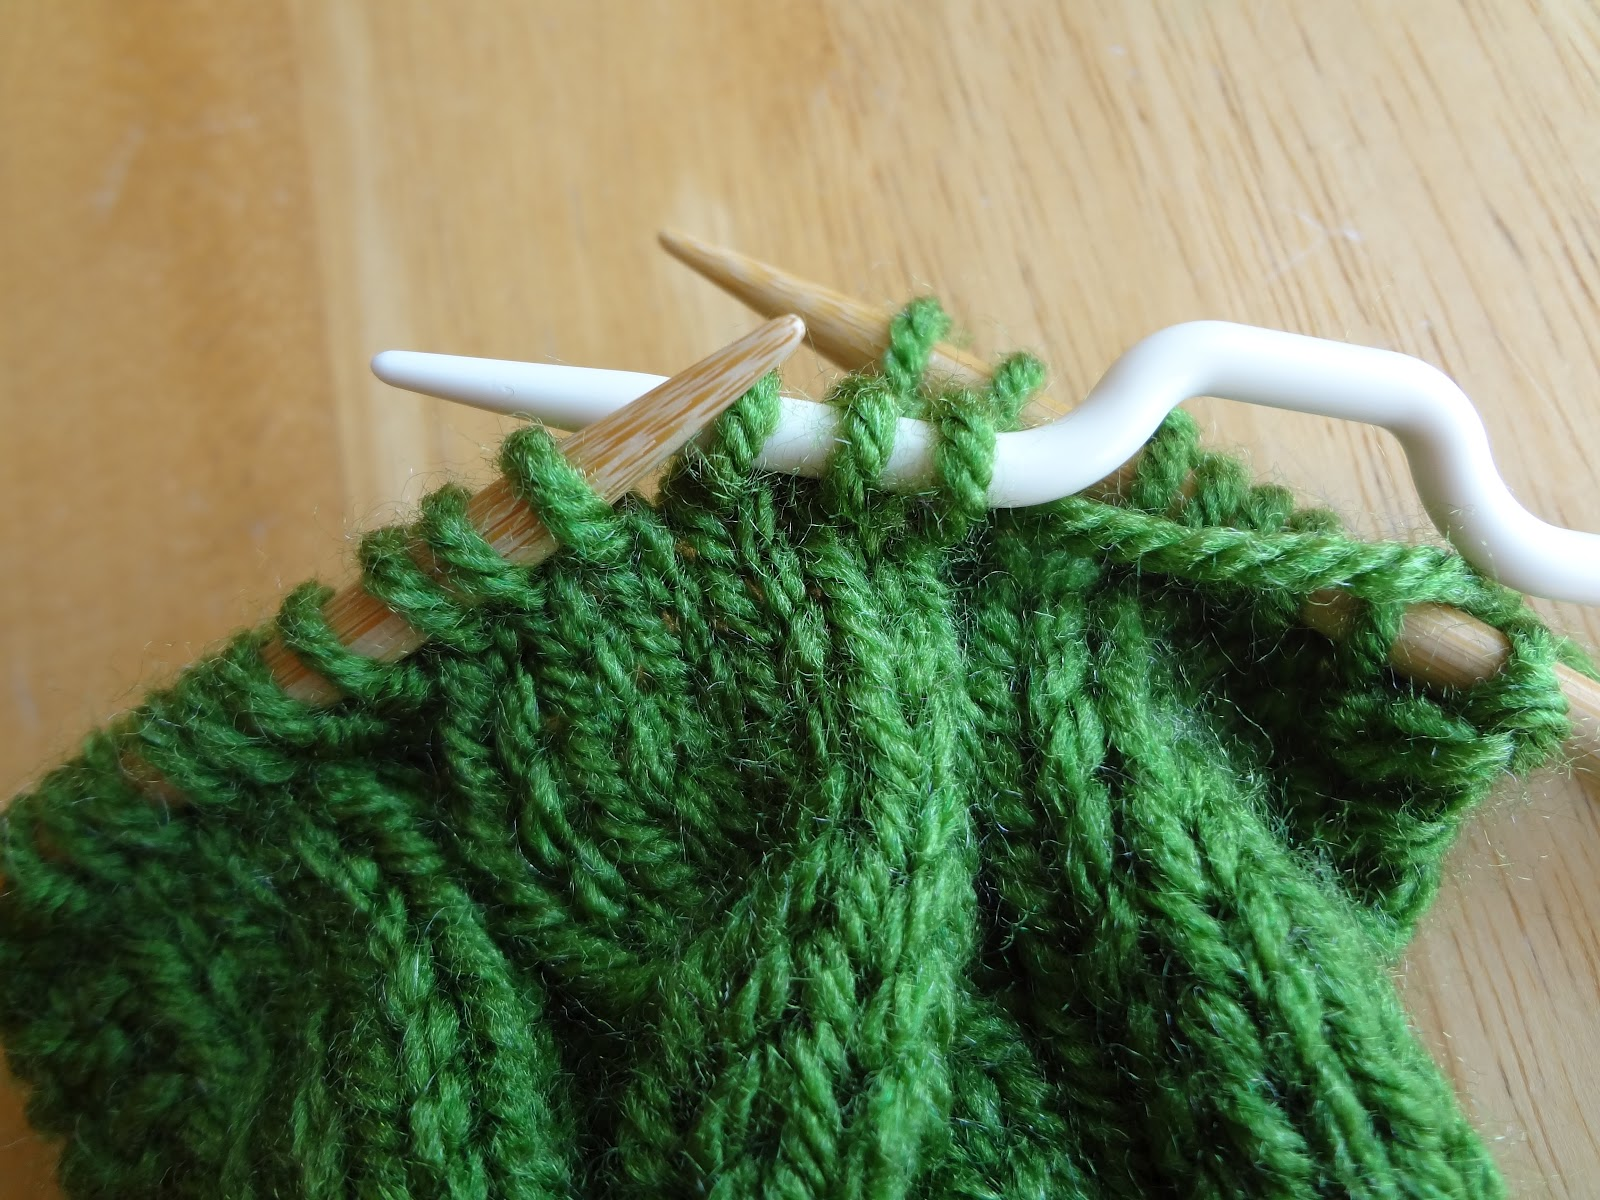 Knitting Cable Stitch Library : Fiber Flux: From the Knitting Stitch Library...How to Make Cables